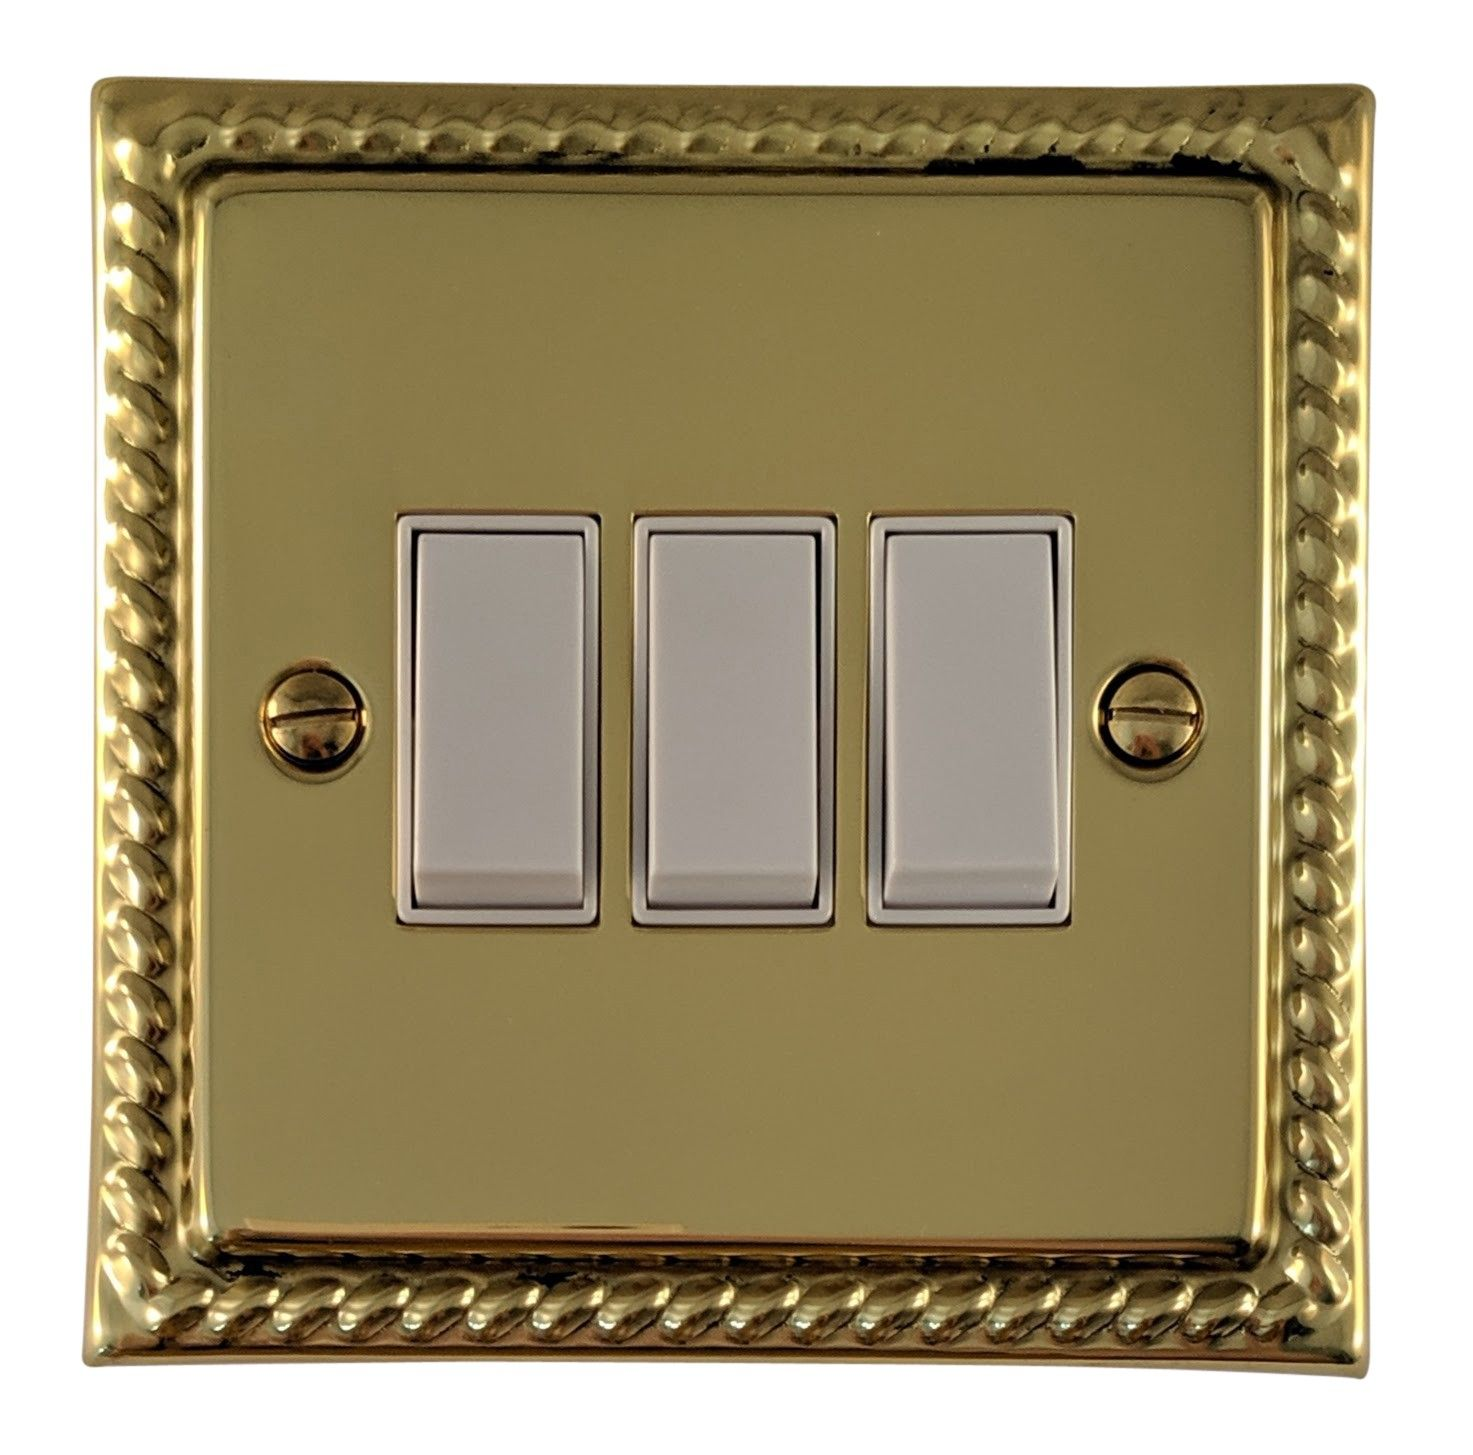 G&H MB3W Monarch Roped Polished Brass 3 Gang 1 or 2 Way Rocker Light Switch